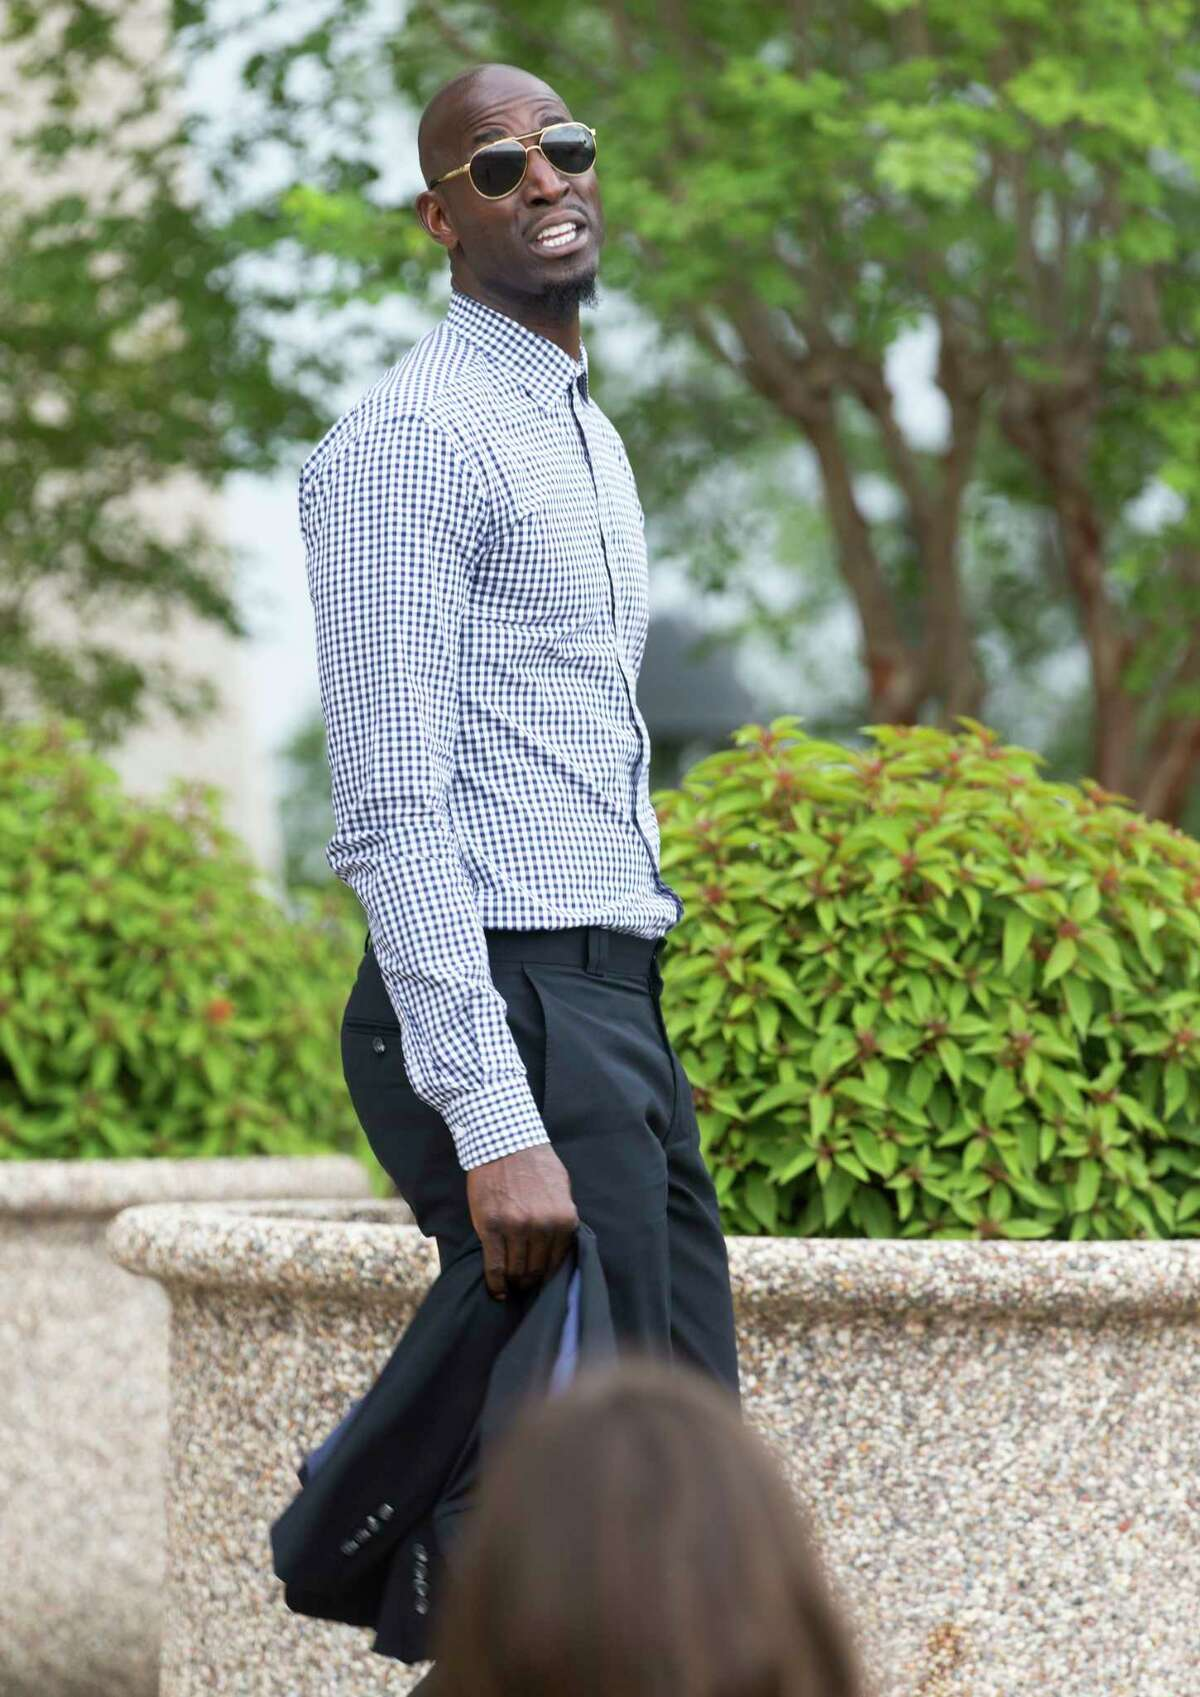 Former NBA star Kevin Garnett leaves the federal courthouse in San Antonio Tuesday, June 27, 2017 after attending a sentencing hearing in Tim Duncan's legal case against Duncan's former financial adviser Charles Banks.